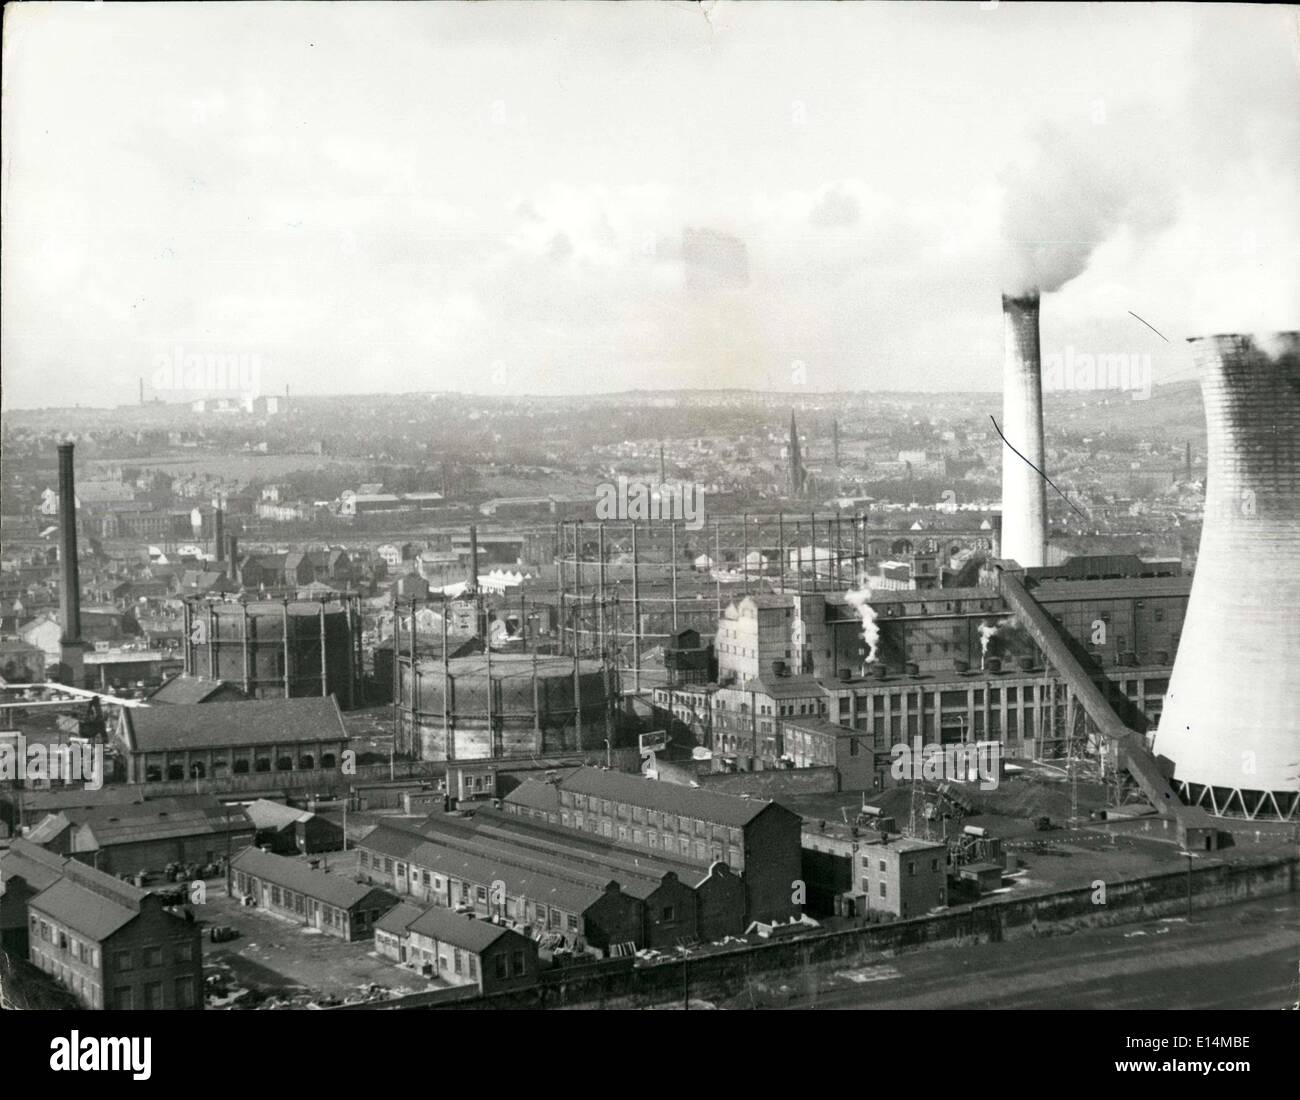 Apr. 05, 2012 - Industrial scene showing factor cooling towers - Stock Image